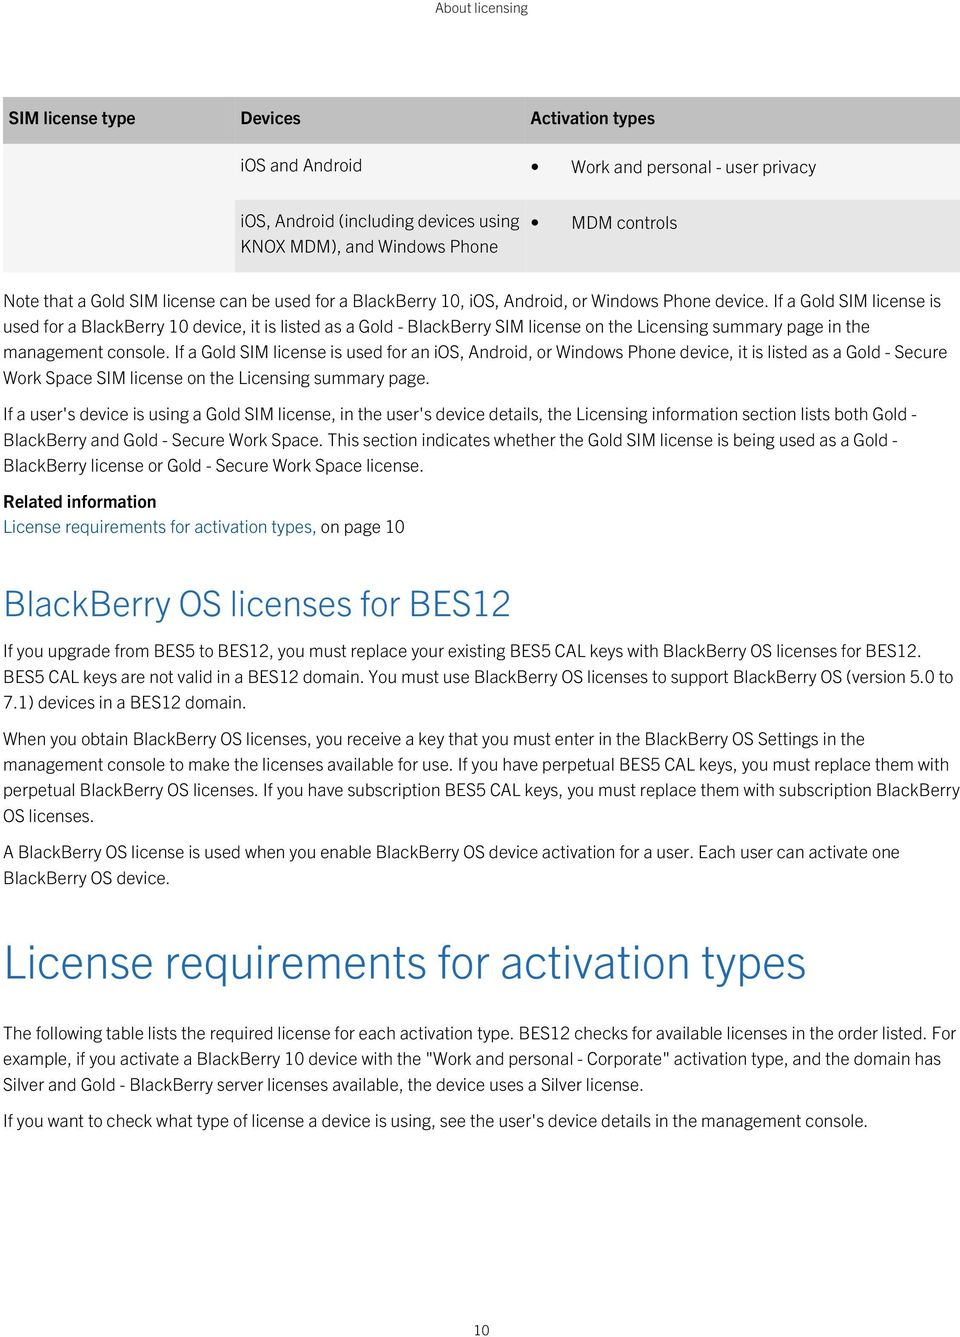 If a Gold SIM license is used for a BlackBerry 10 device, it is listed as a Gold - BlackBerry SIM license on the Licensing summary page in the management console.